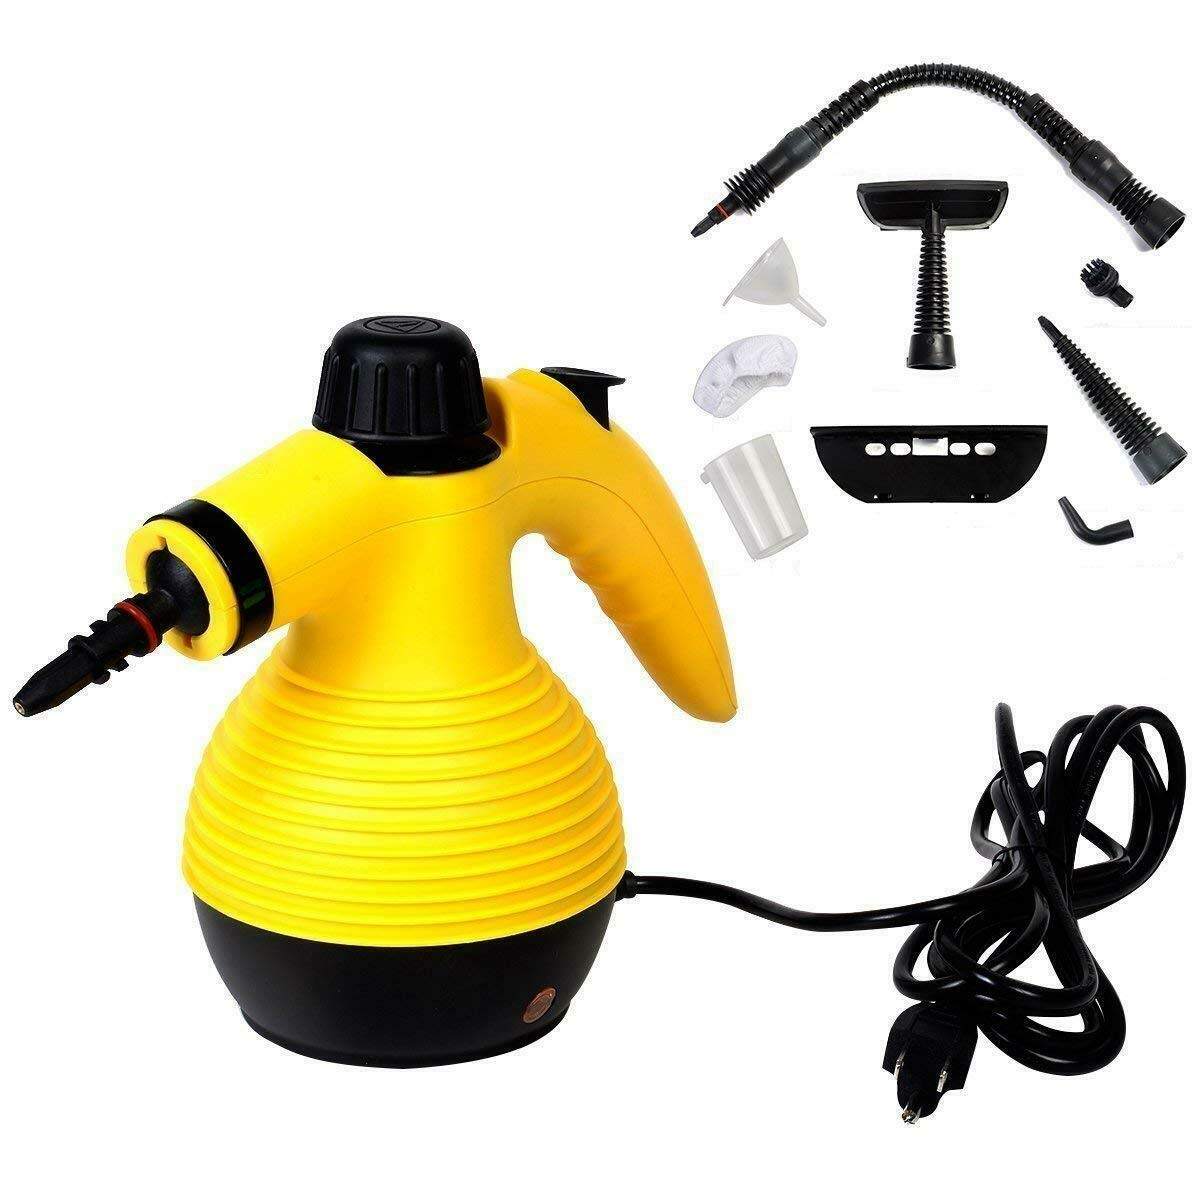 Creative Product Multi Purpose Handheld Multifunction Portable Steamer Household Steam Cleaner 1050W with Attachments Provide High-Pressure Steam to Deep Clean and Sanitize You Whole Home